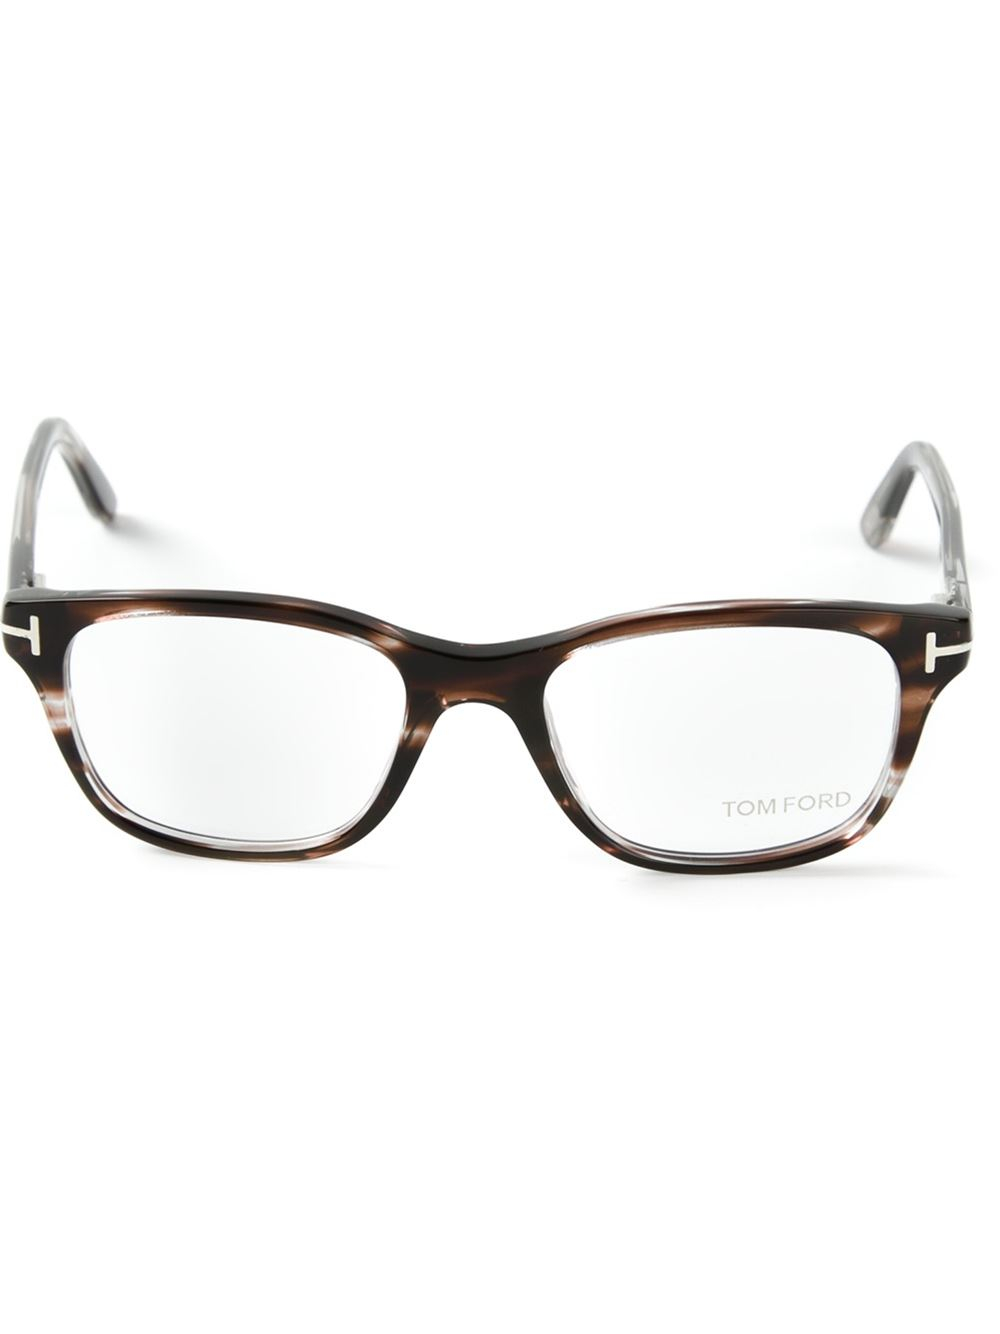 tom ford square frame glasses in brown for lyst